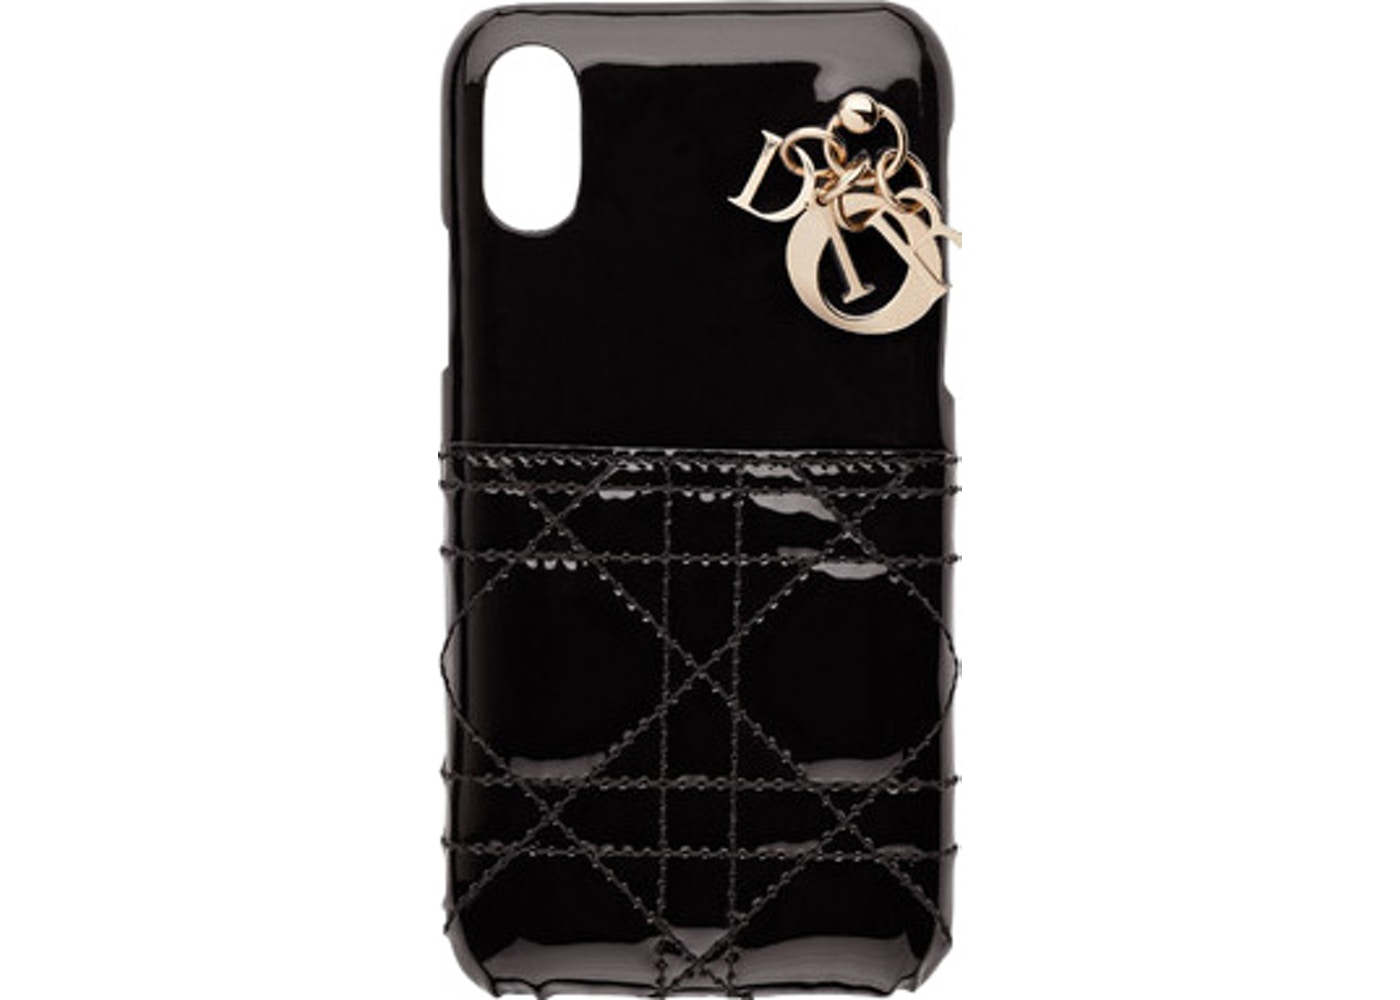 the best attitude 3bc8e cadb0 Dior Lady Dior iPhone Case X Black